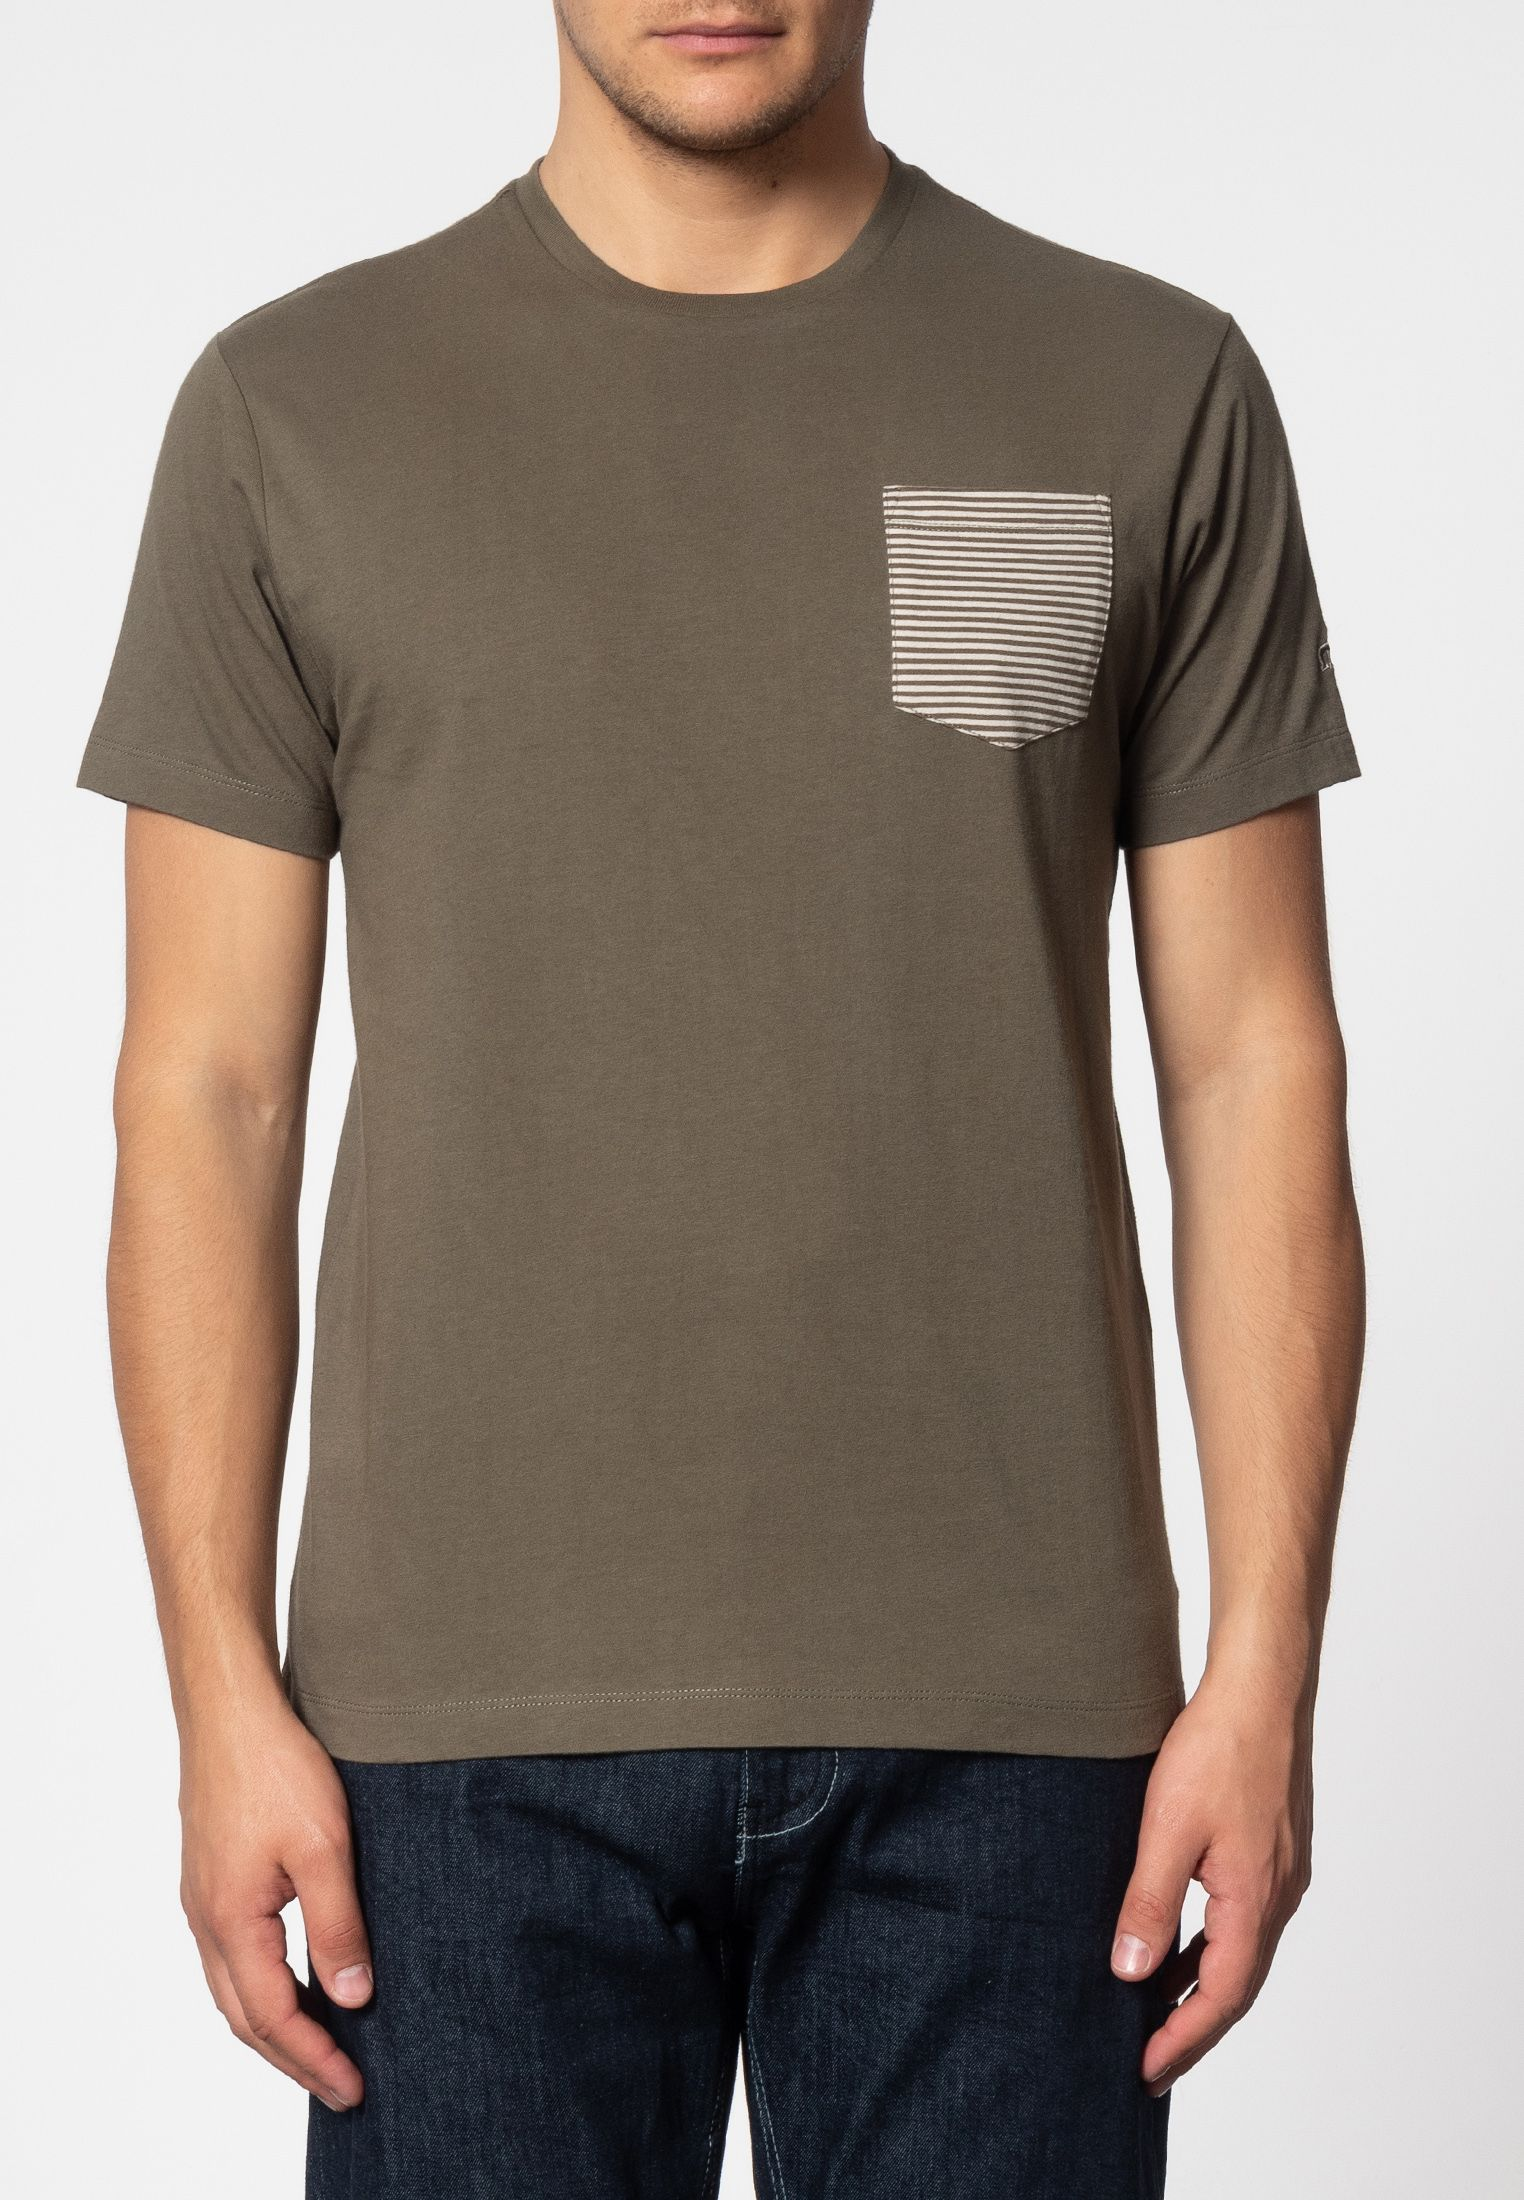 Eagle Short Sleeve T-Shirt With Stripe Pocket In Dark Sage